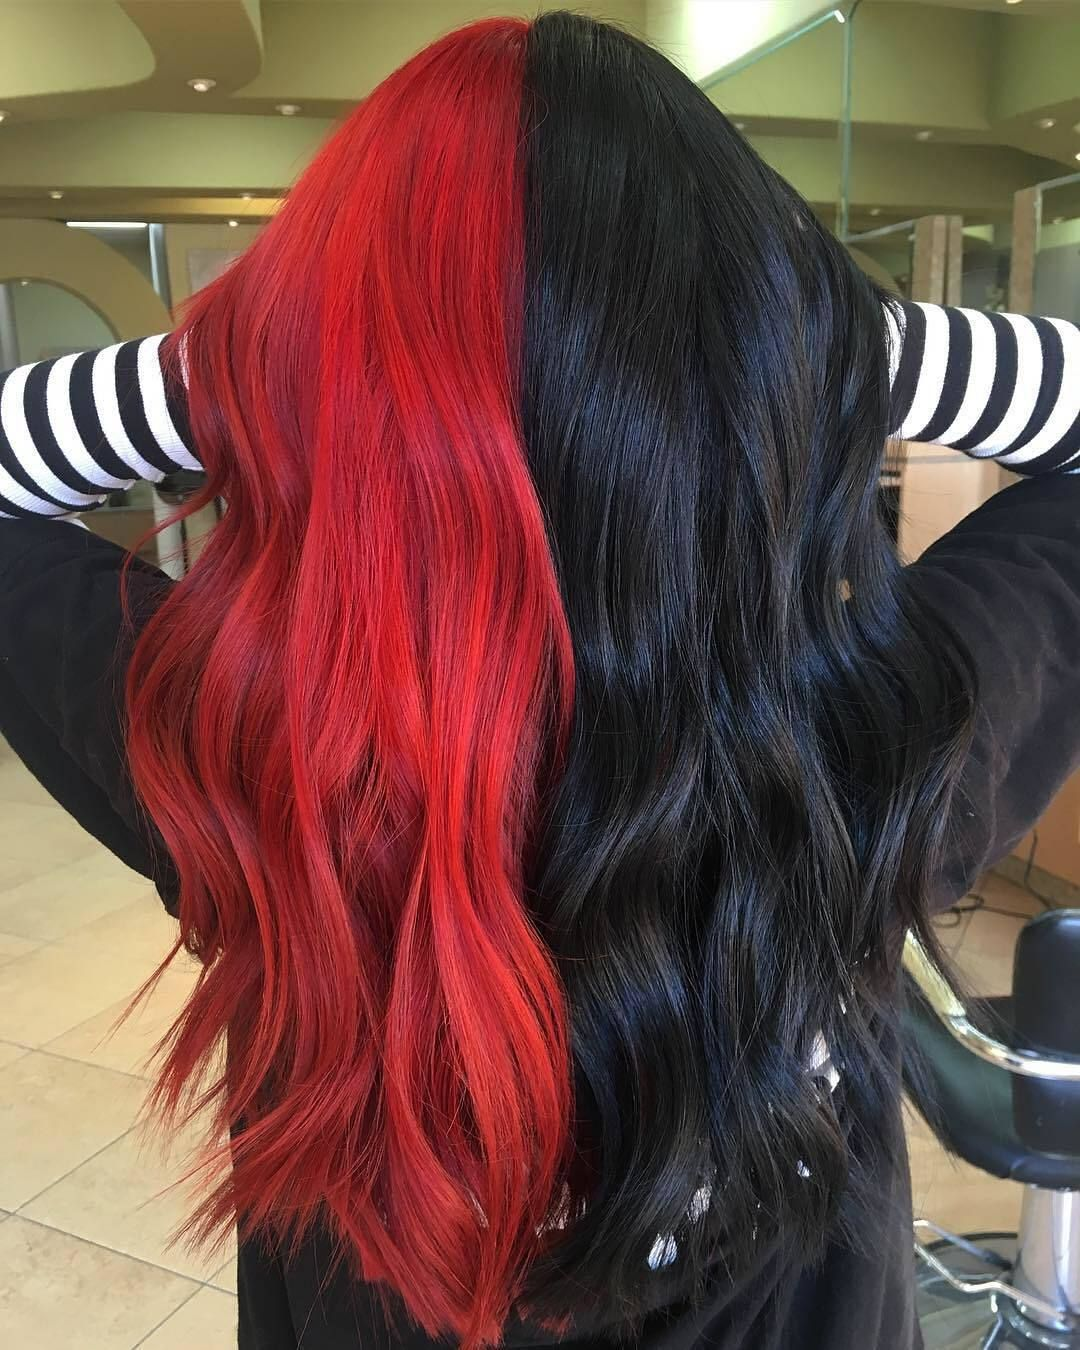 Red Wigs Lace Front Cornrows For Black Women Hairstyles For Older Women With Thin Hair Formal Hairstyles For Medium Hair 80S Hairstyles Women Best Haircuts For Thin Hair Hair Style Girl Simple And Easy